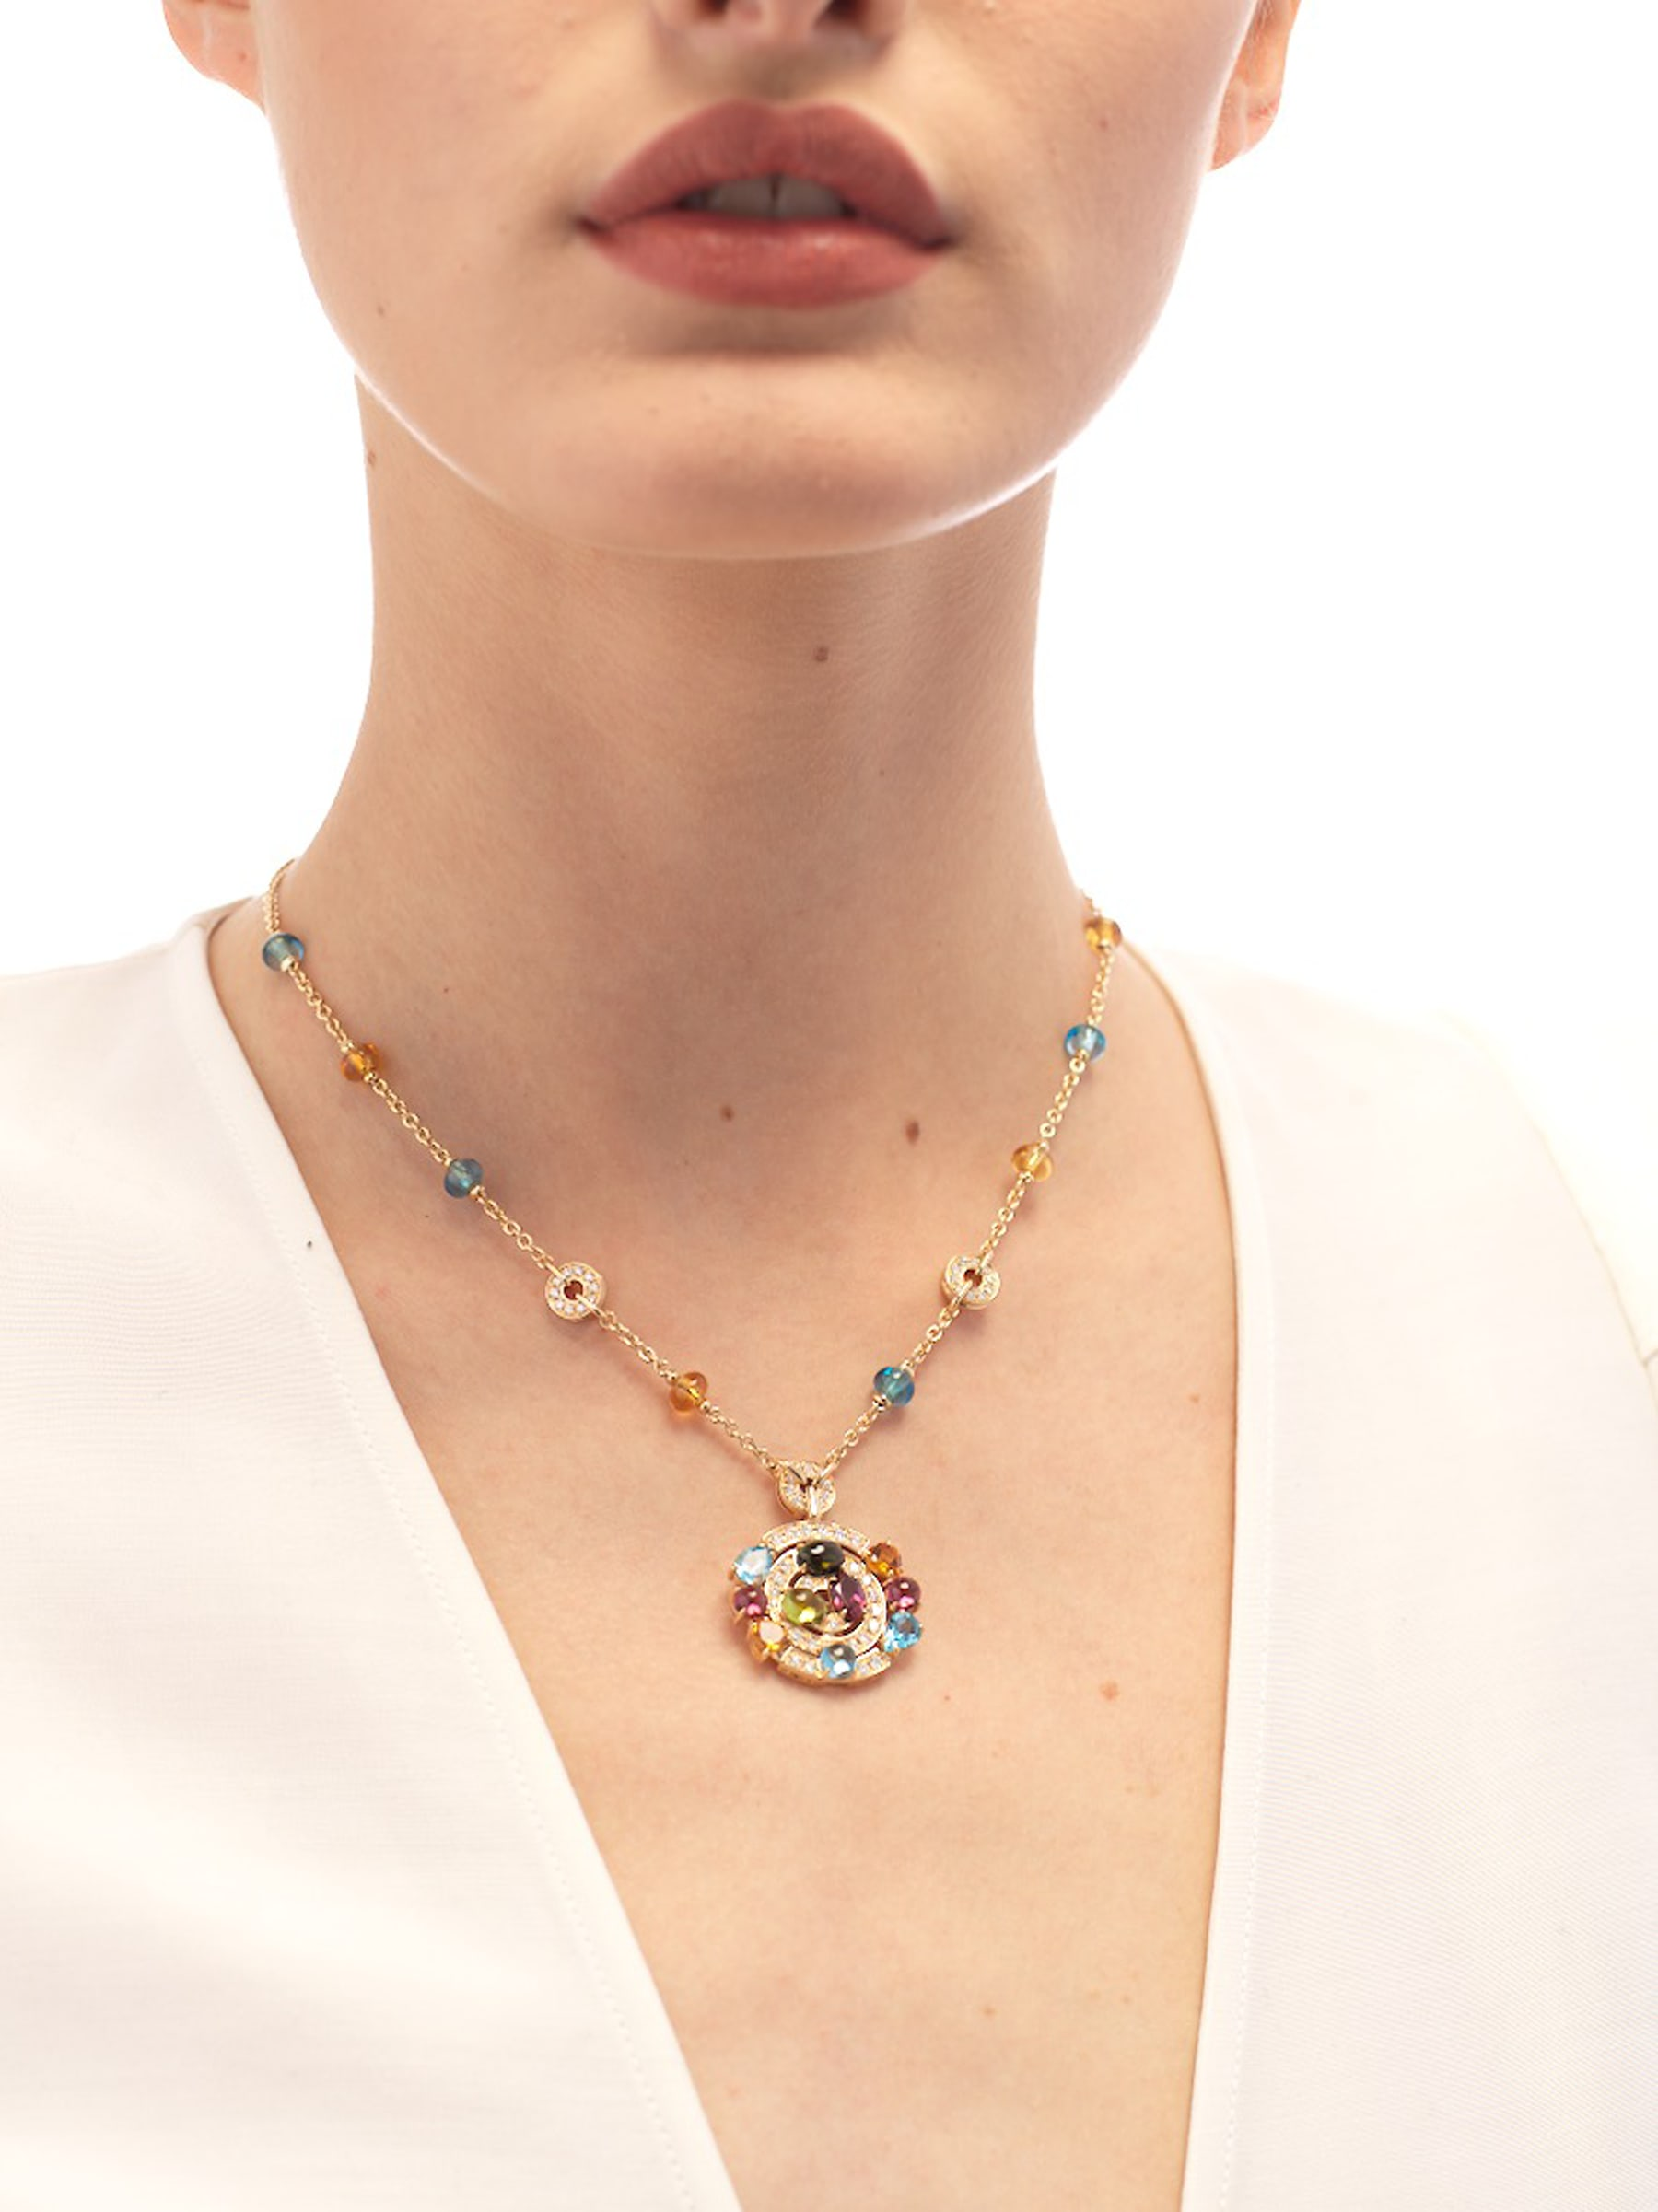 Cerchi 18 kt yellow gold large pendant necklace set with blue topazes, amethysts, green tourmalines, peridots, citrine quartz, rhodolite garnets and pavé diamonds 338229 image 4